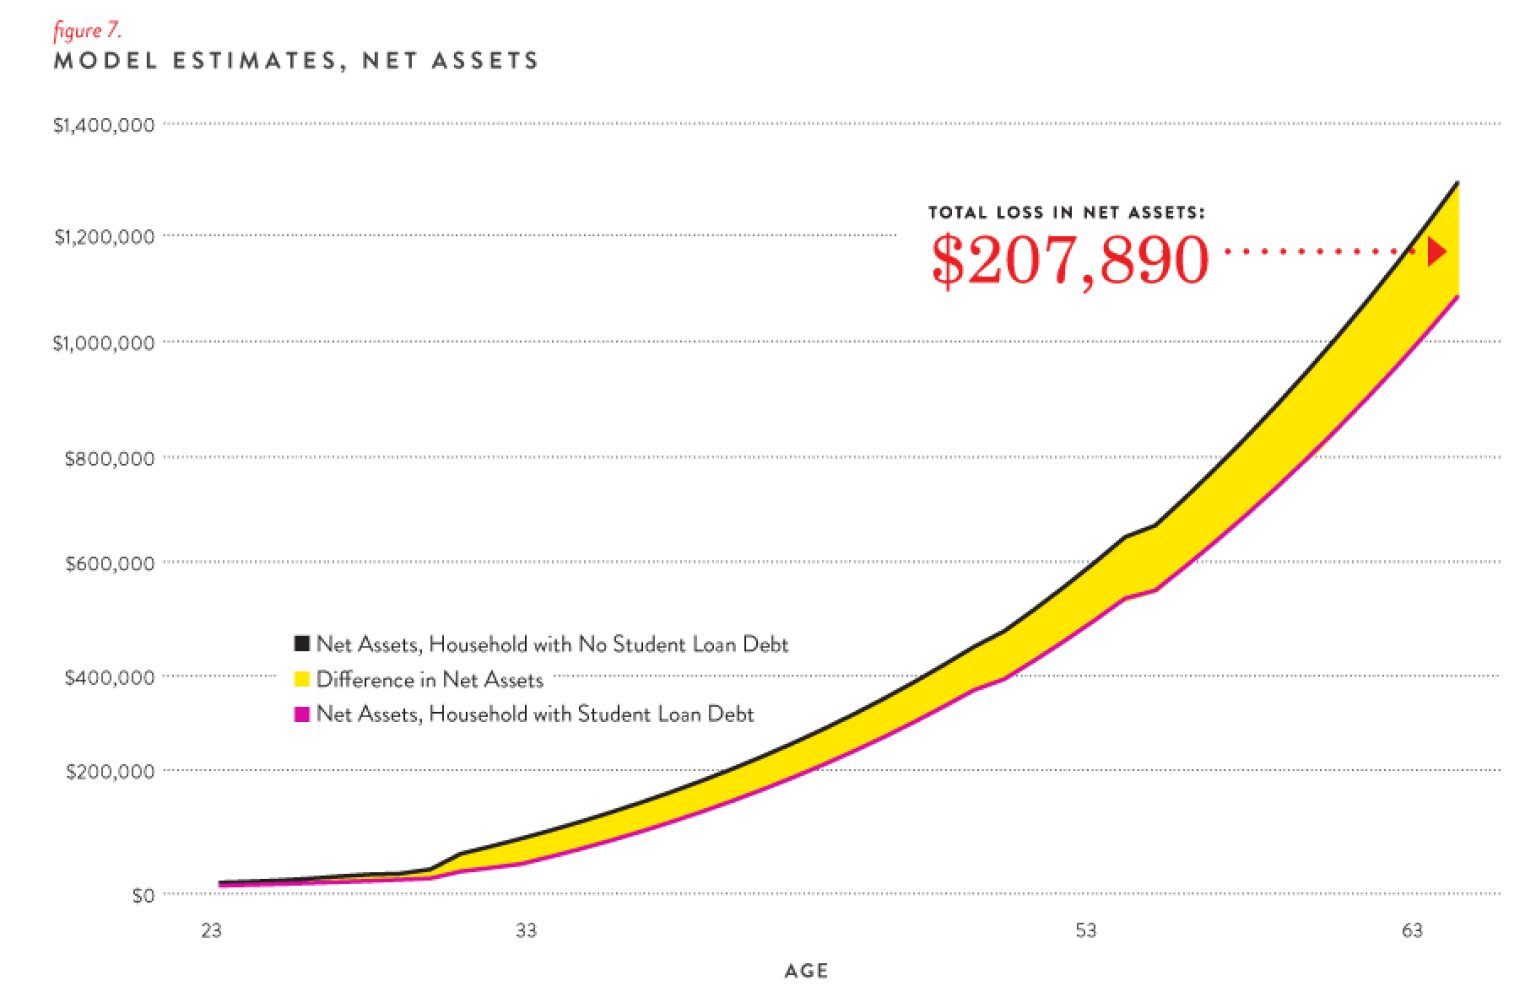 lifetime of student debt Paying off an $80,000 student debt instilled lessons that have lasted a  lifetime february 03, 2018, 10:46:00 am edt by valuepenguin loading.